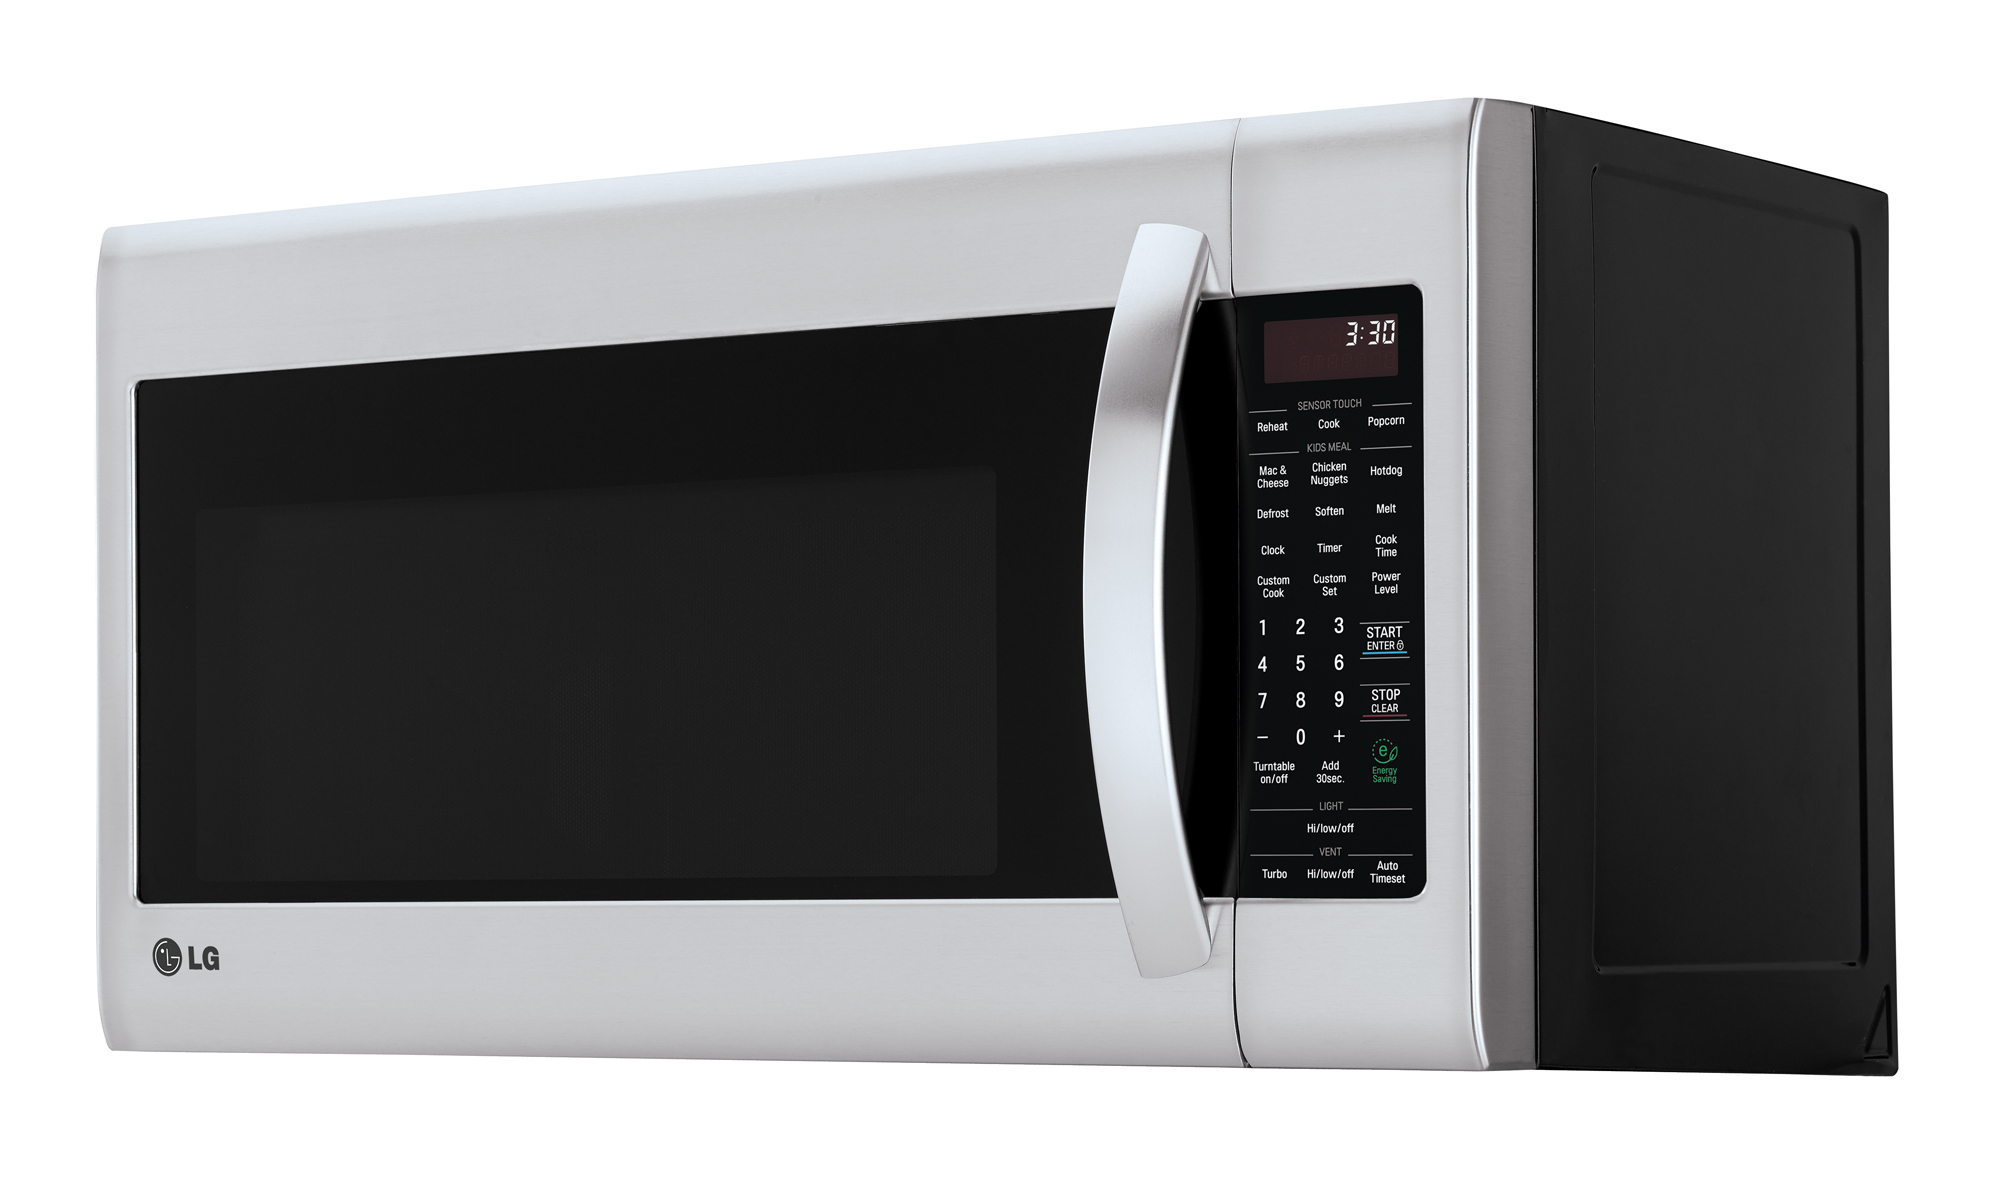 LG Electronics 2 0 cu ft Over the Range Microwave with EasyClean